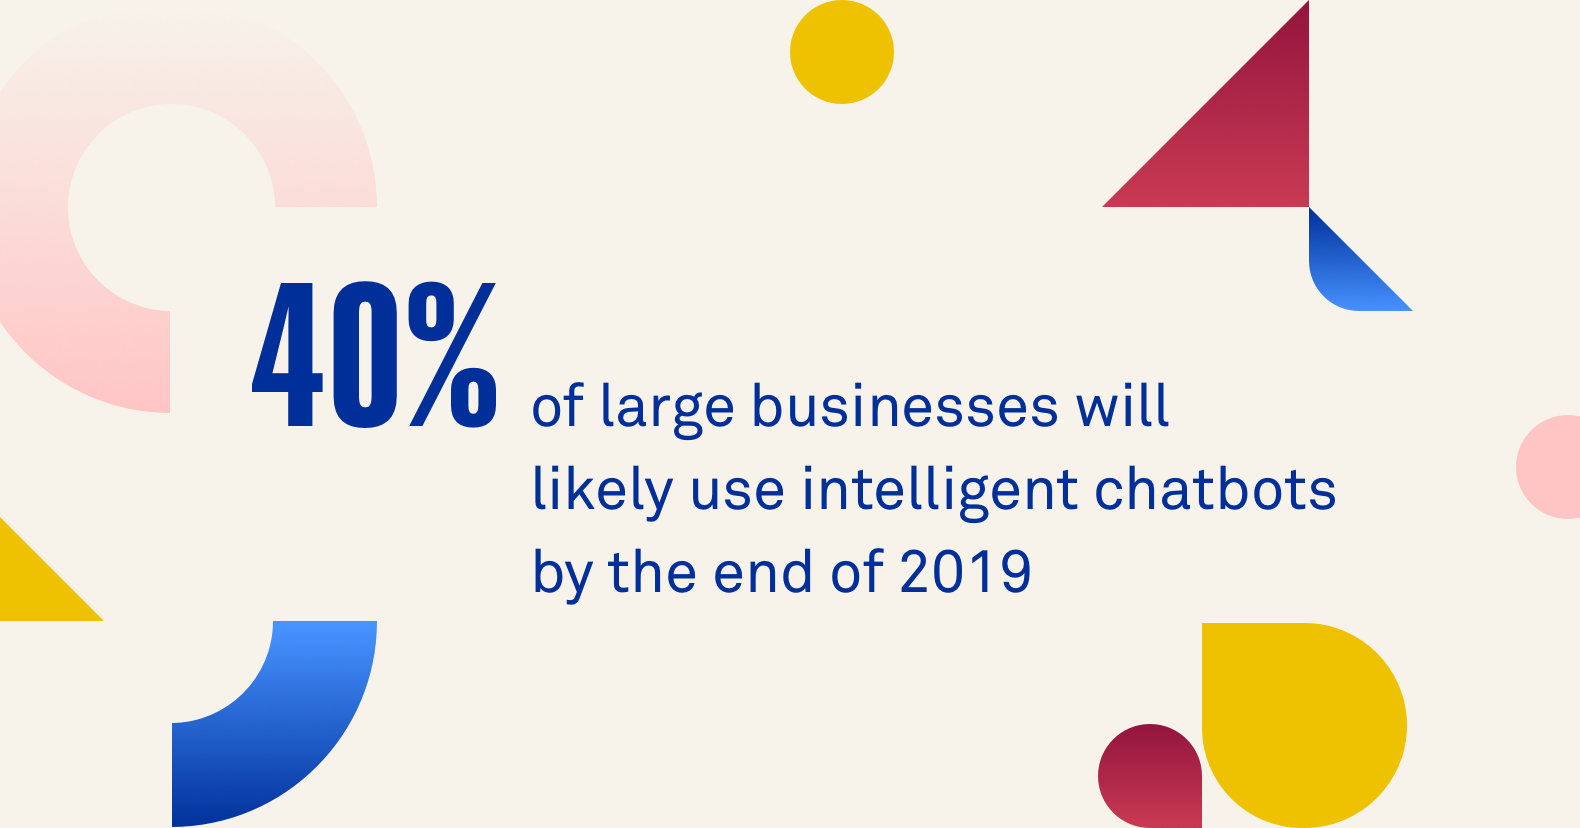 2019 digital marketing updates chatbot statistic: 40 percent of large businesses will likely use intelligent chatbots by the end of 2019